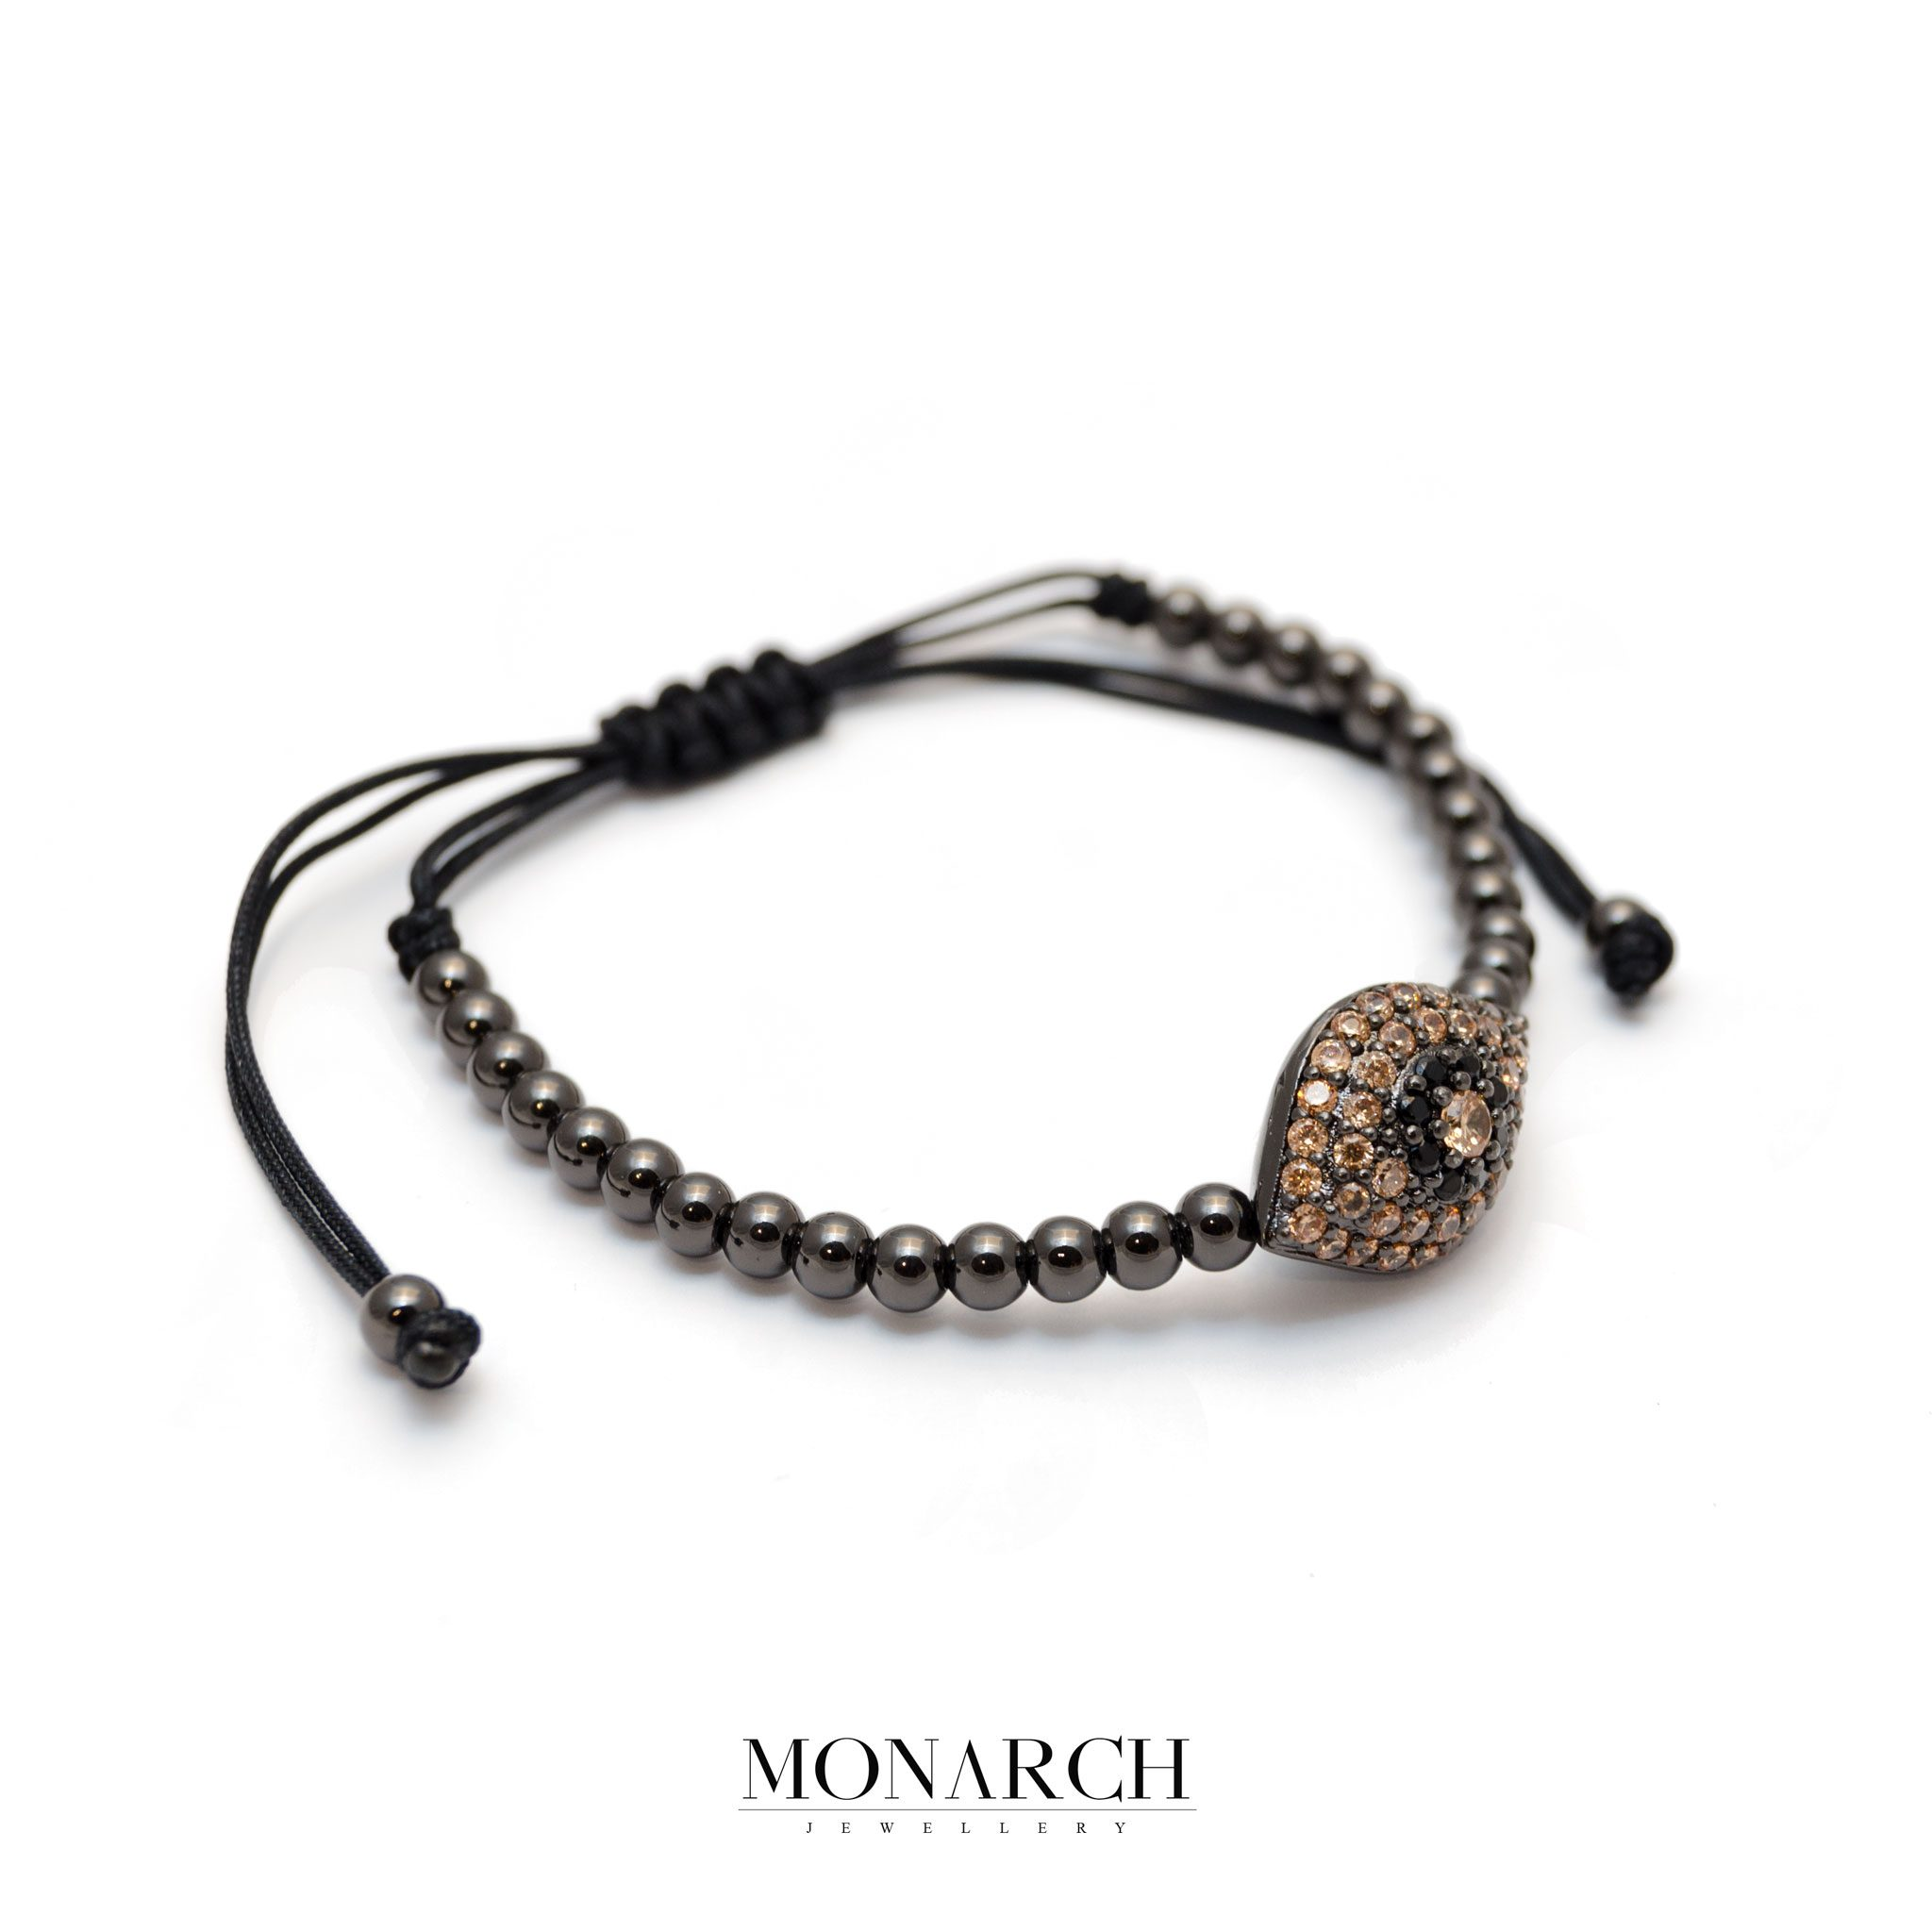 71-Monarch-Jewellery-Black-Brown-Evil-Eye-Charm-Macrame-Bracelet-resized